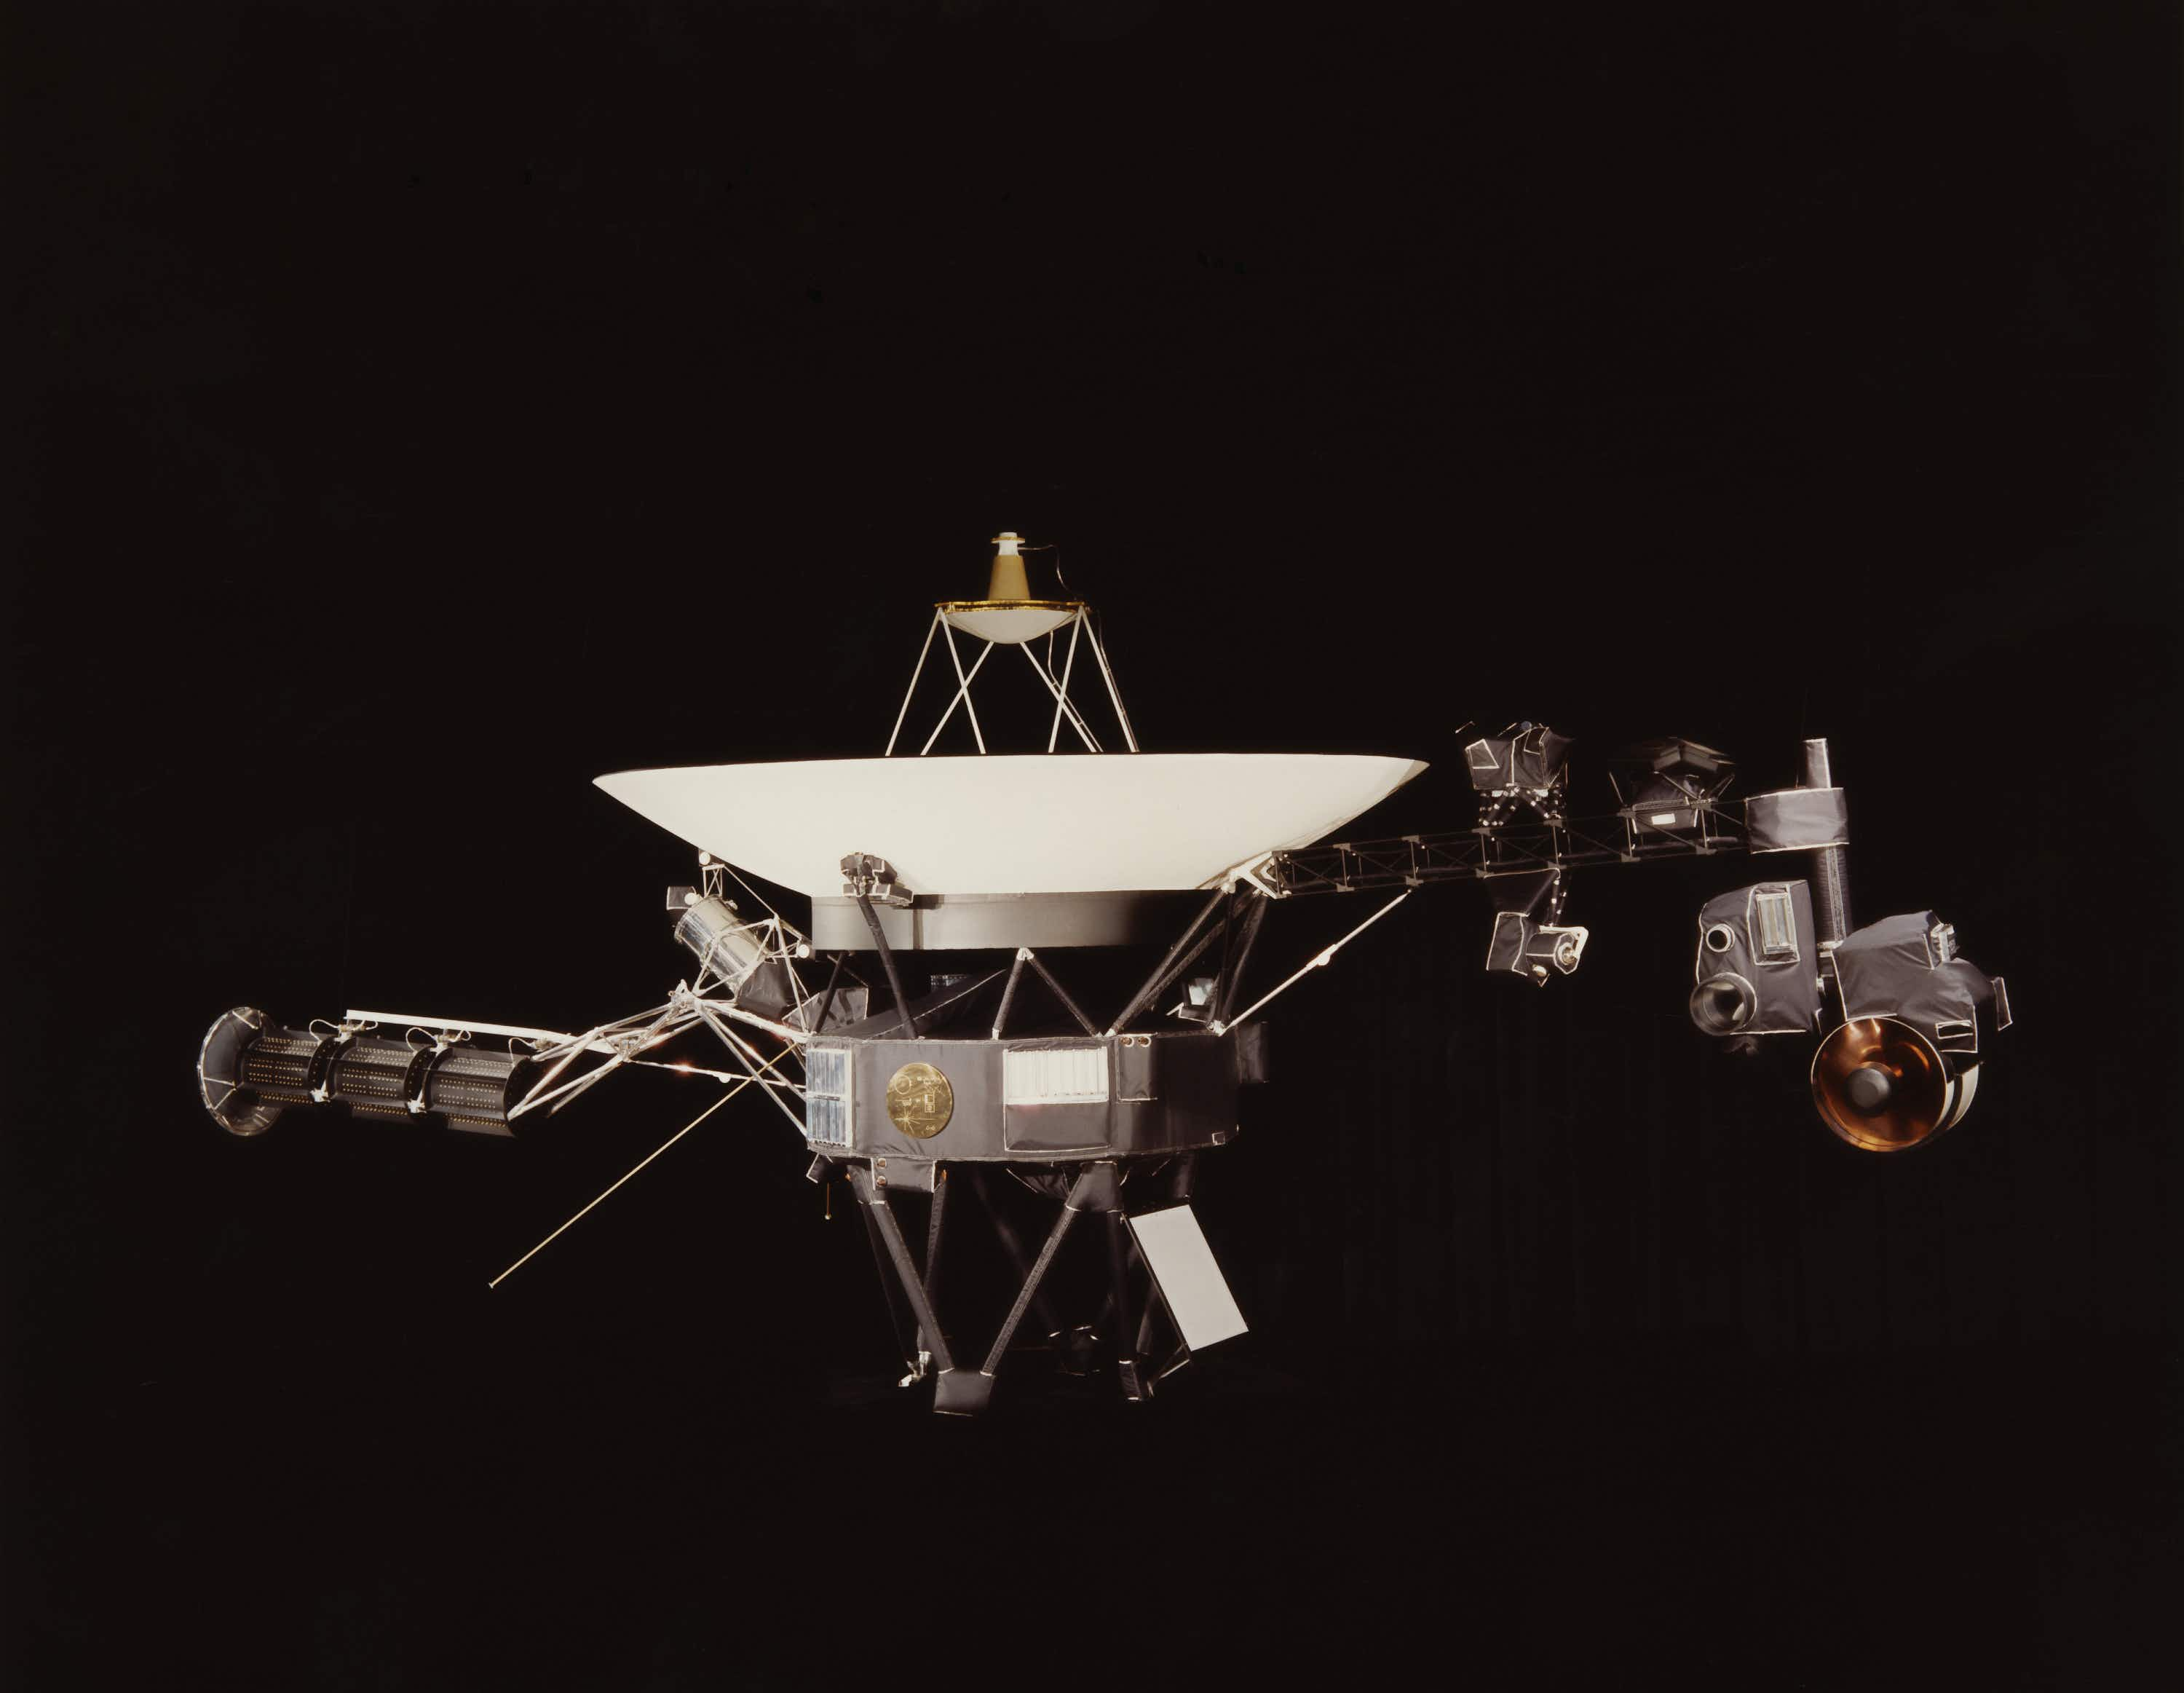 NASA wants to transmit your message to interstellar space to mark the 40th anniversary of Voyager 1